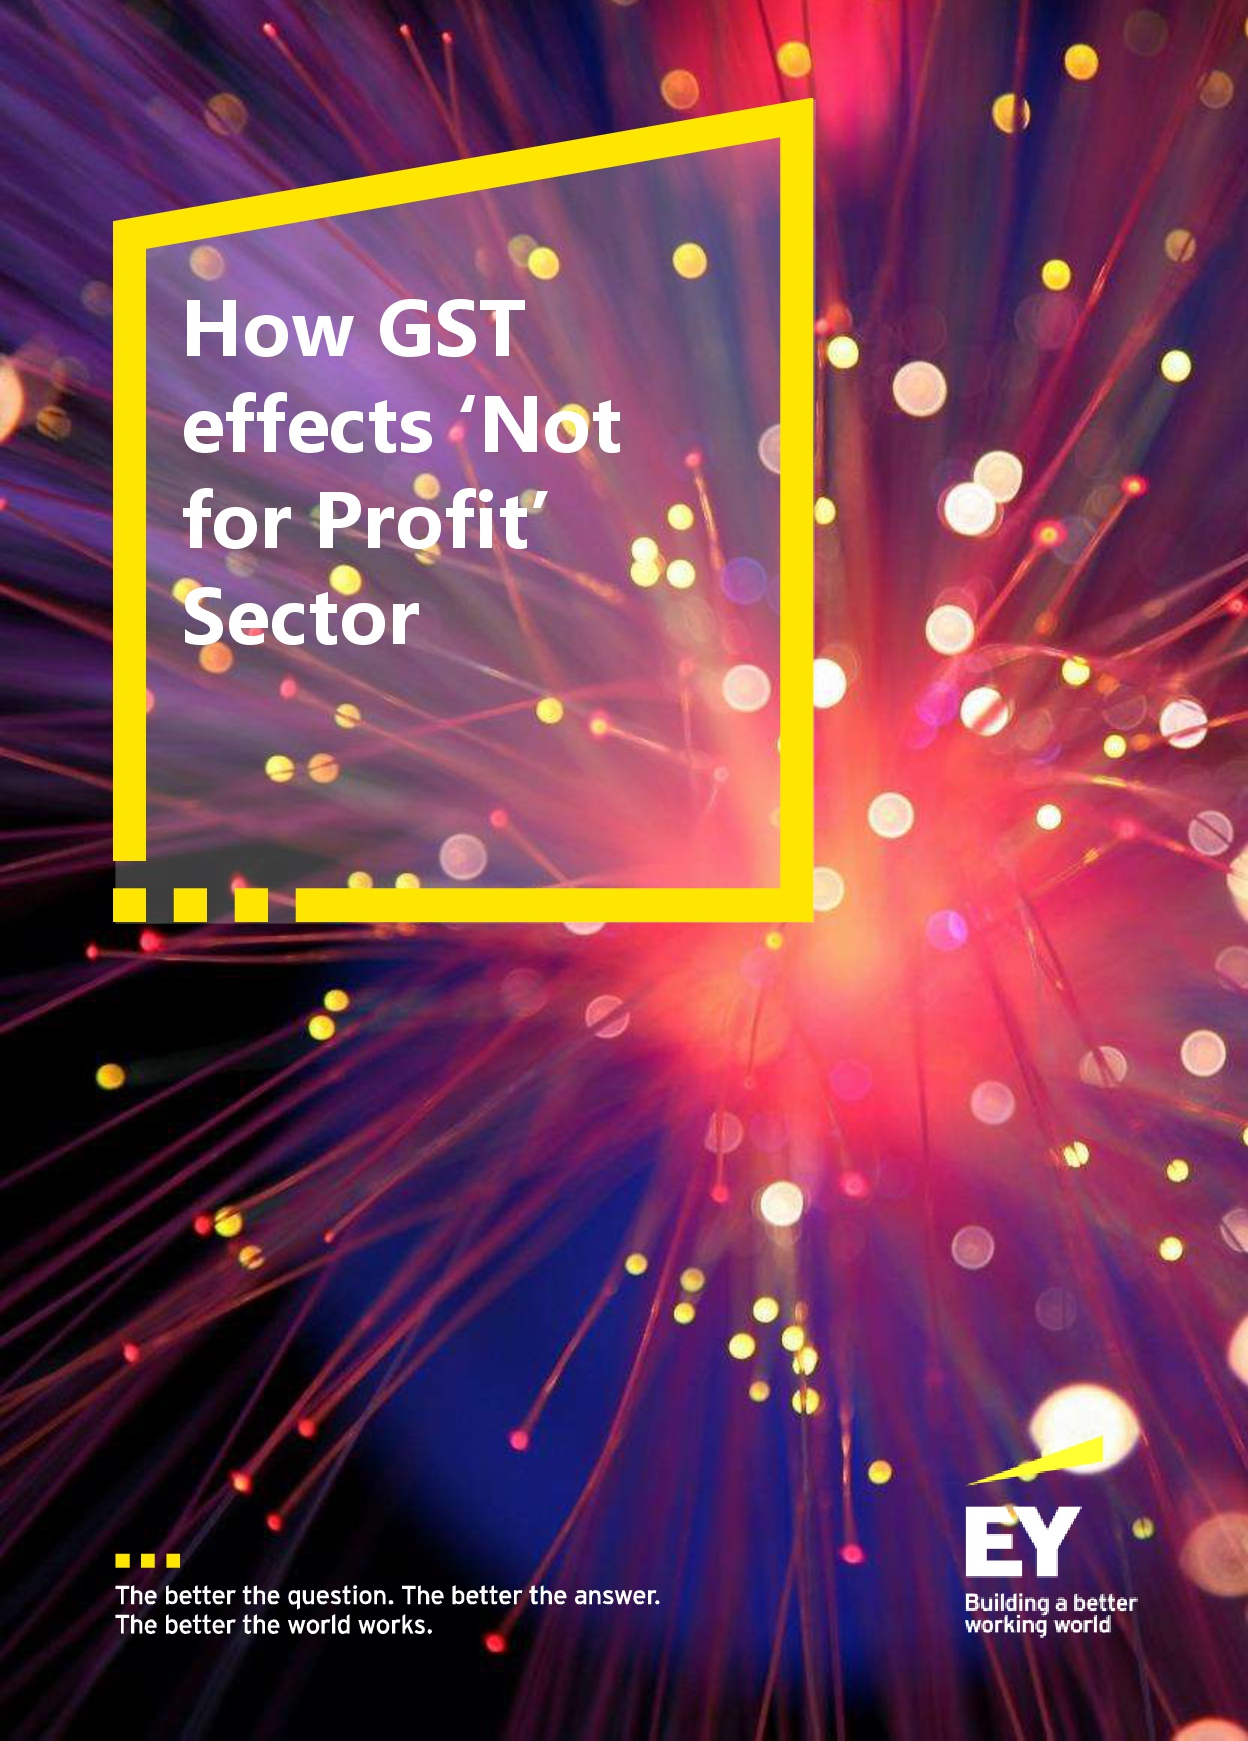 How GST effects 'Not for Profit' Sector